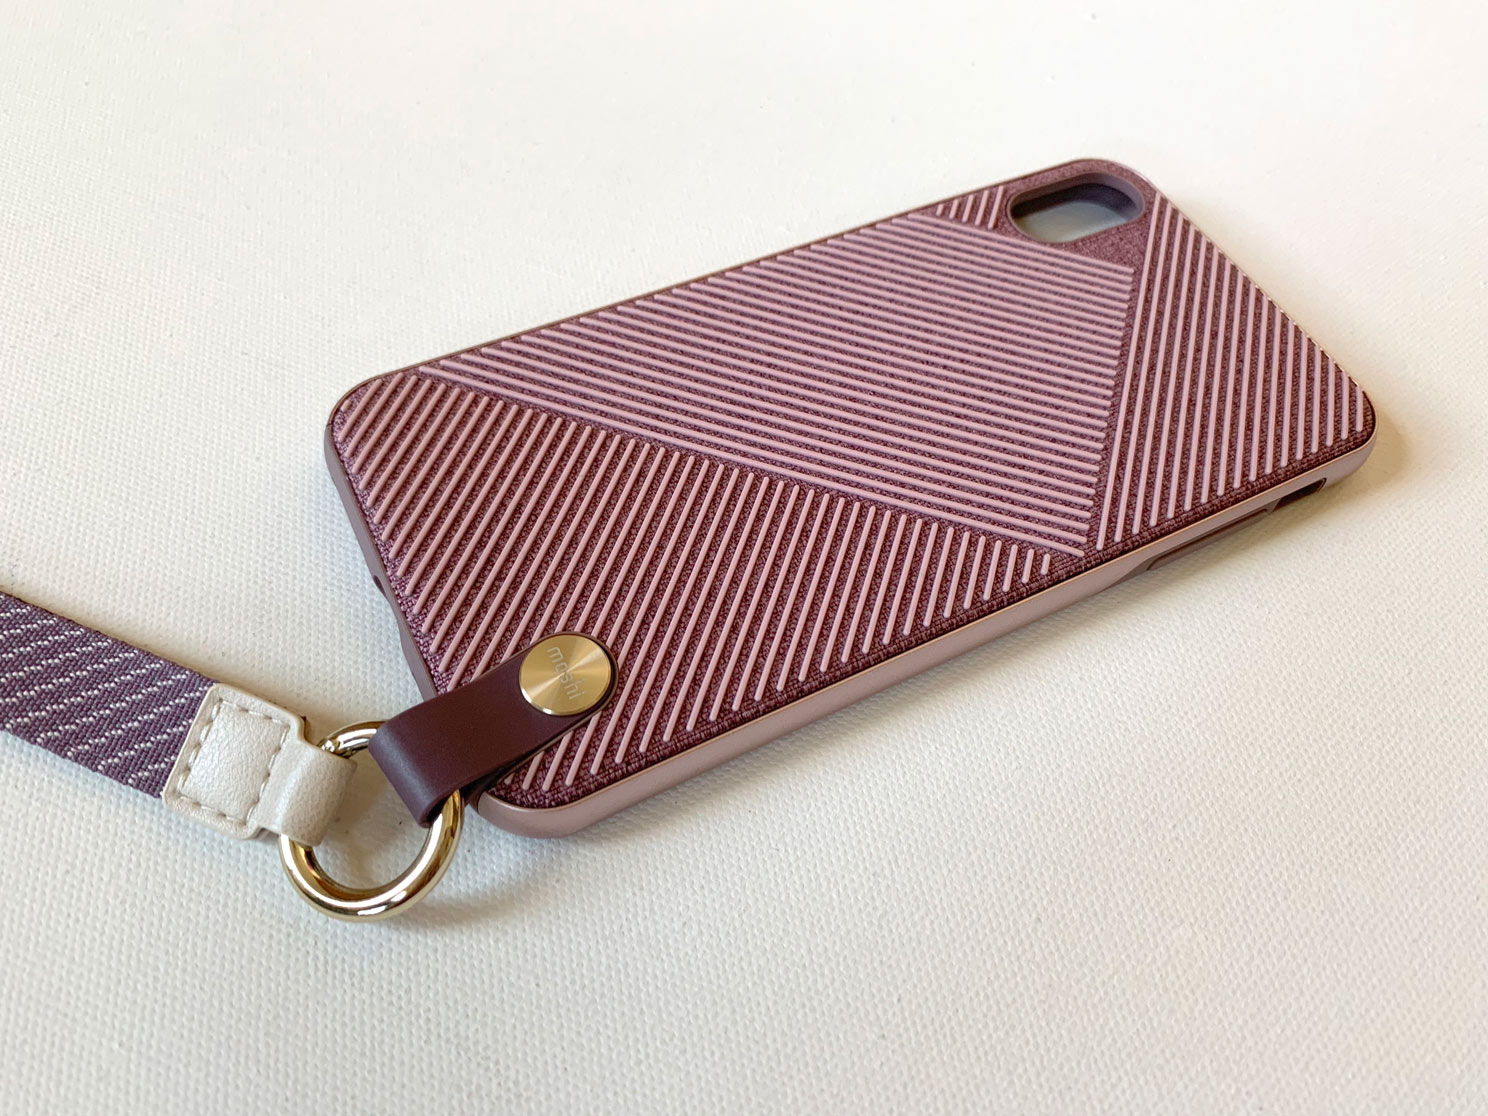 IPhone-XS-Max-Moshi-Altra-Case-With-Strap-1.jpg